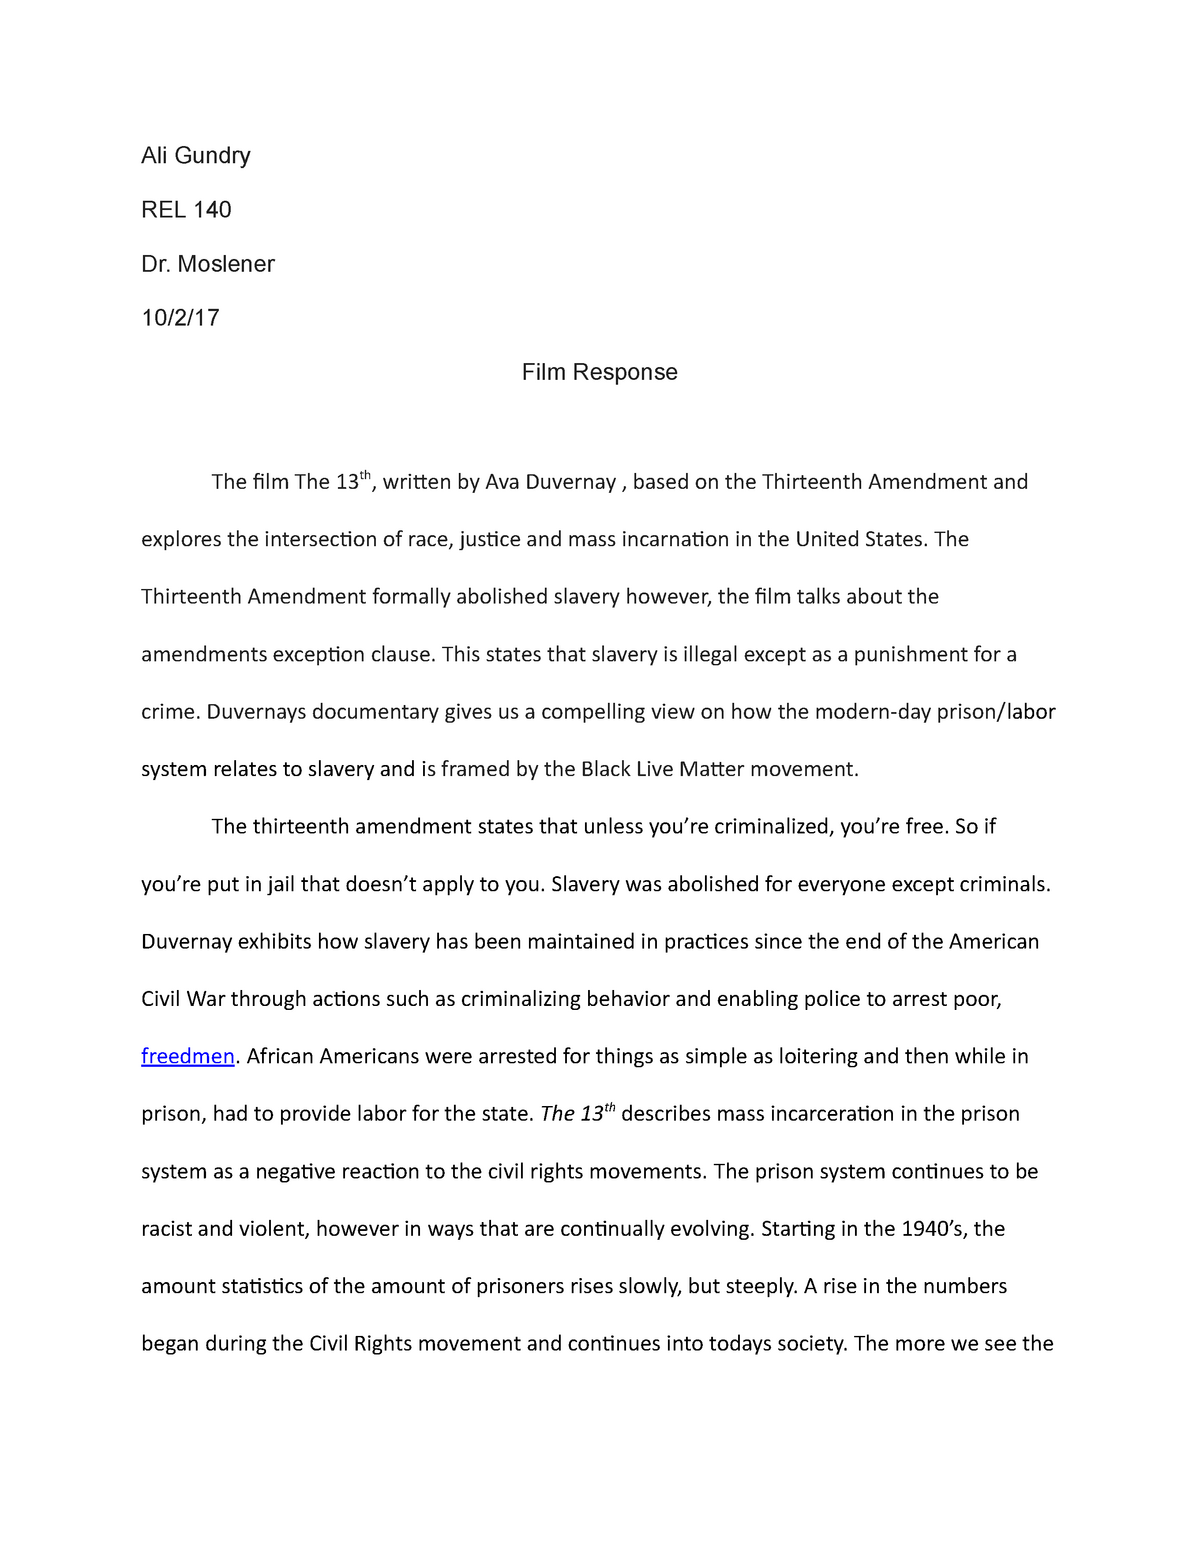 Opinion essay about poverty